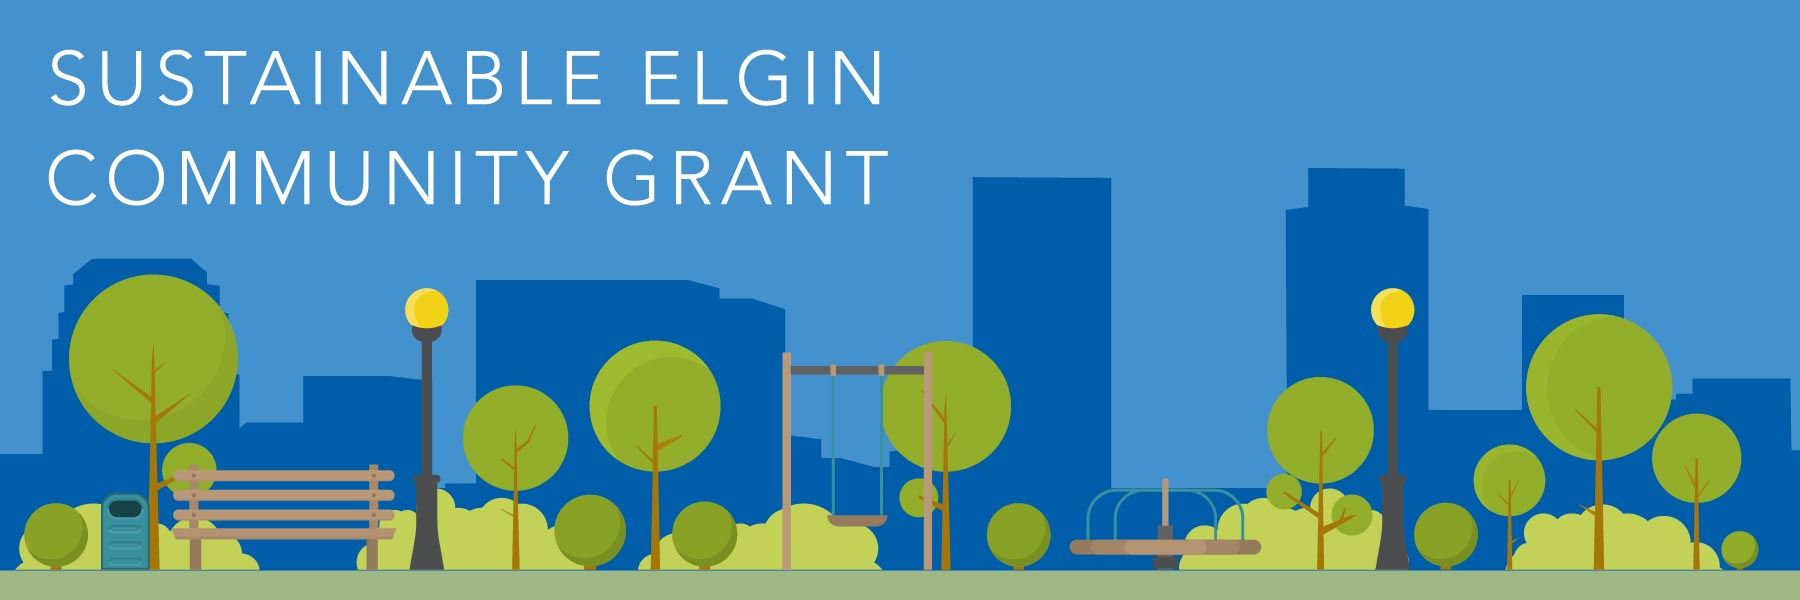 Sustainable Elgin Grant header image